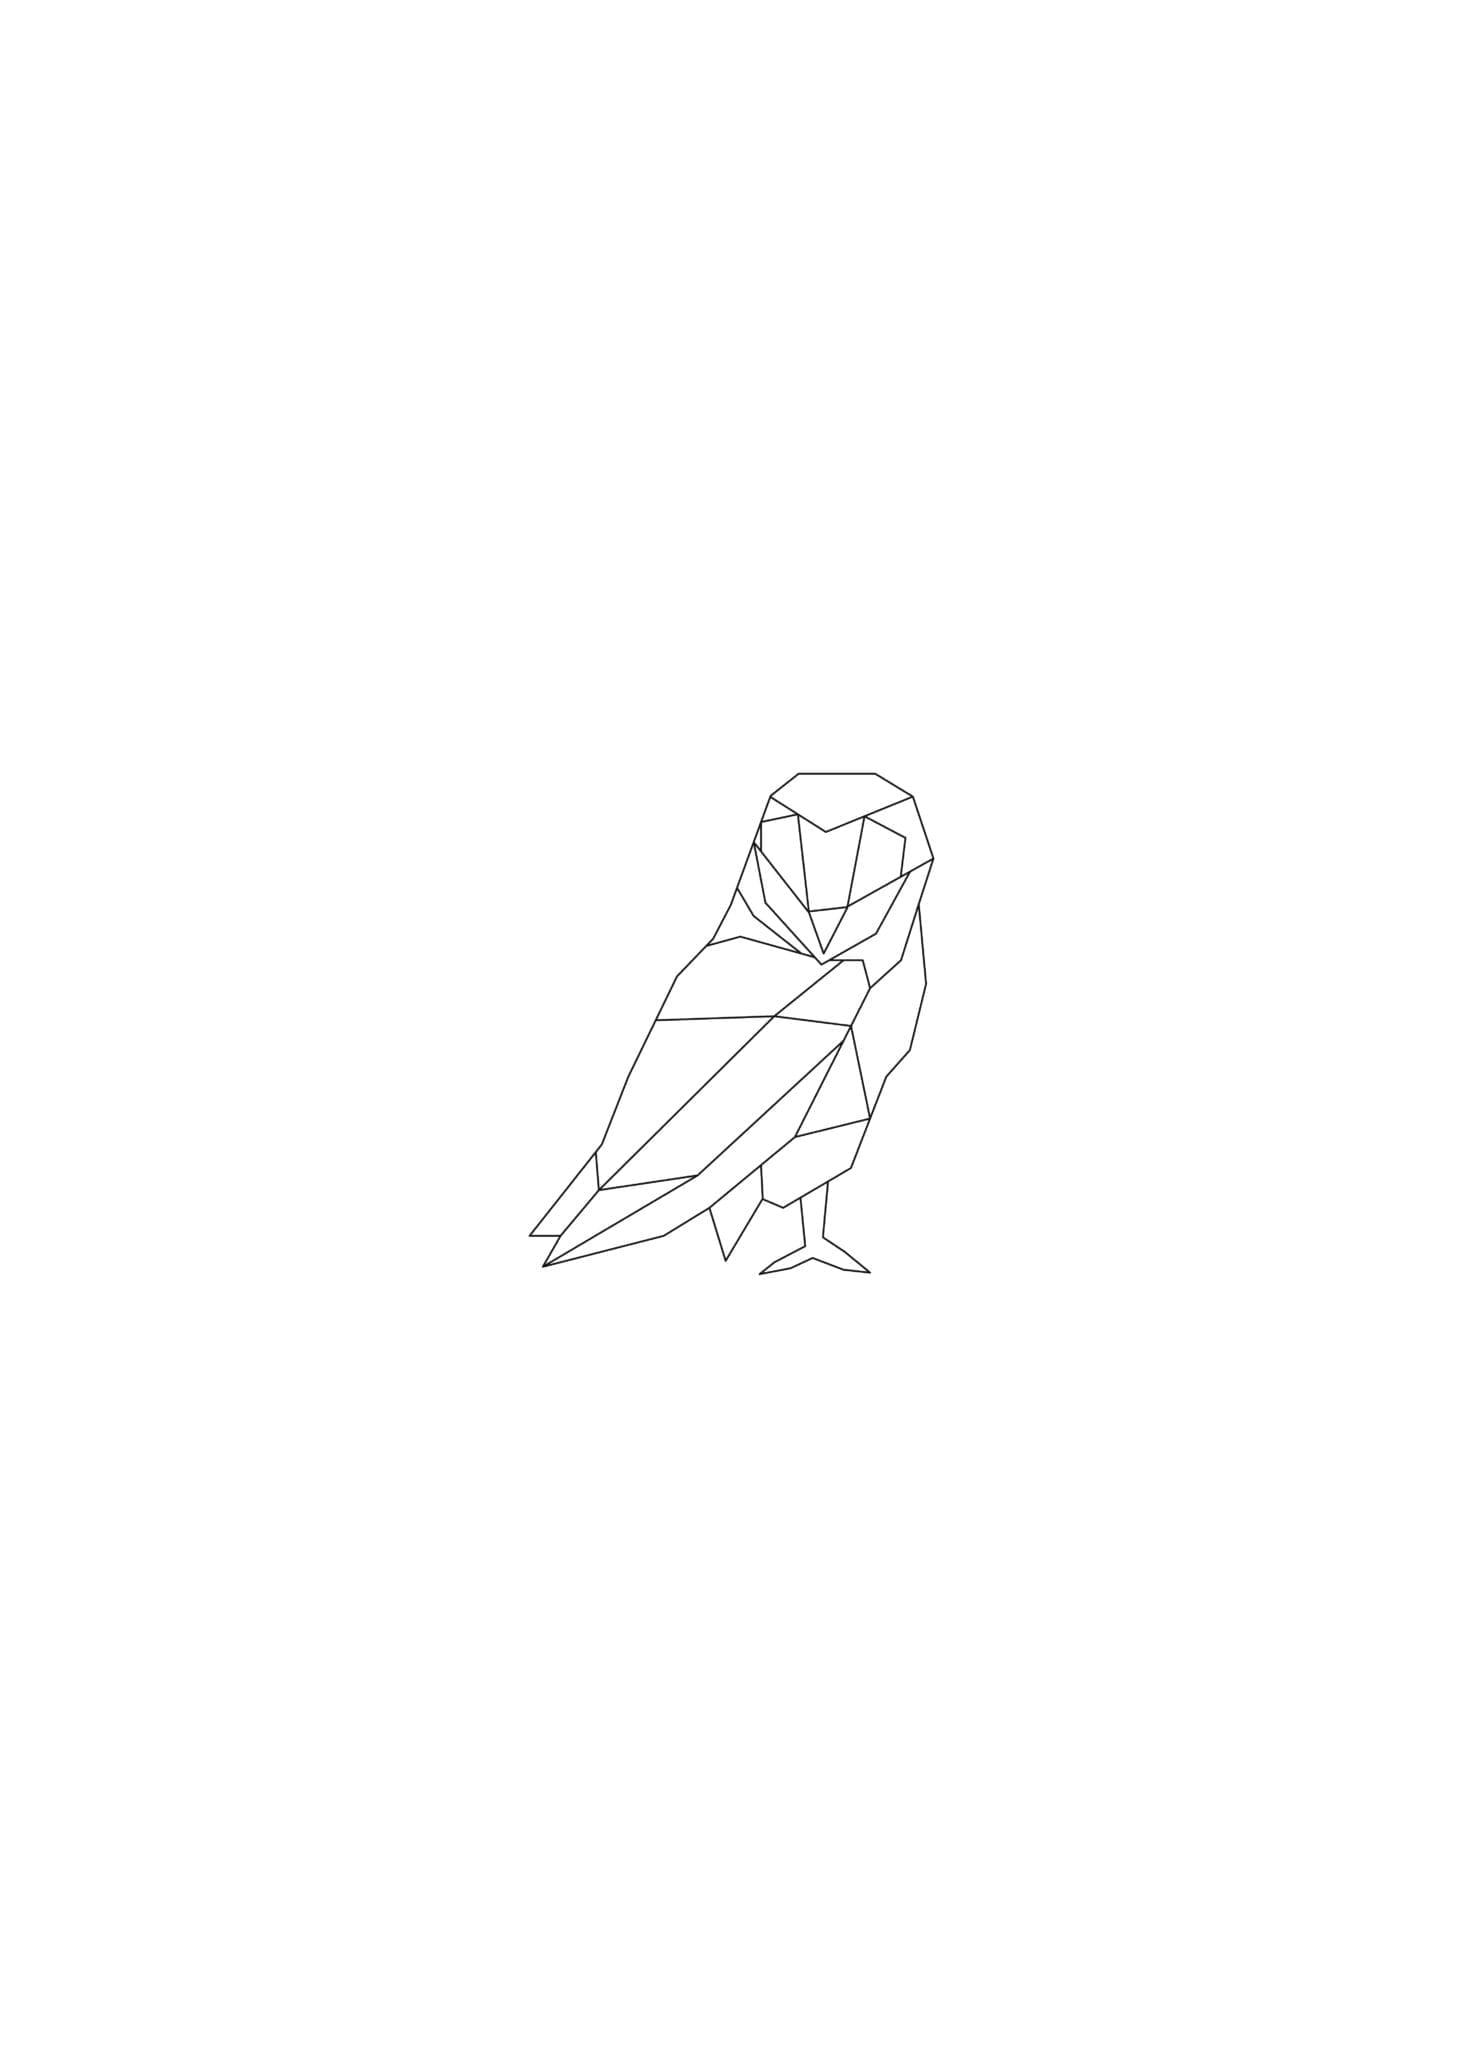 Lined Owl